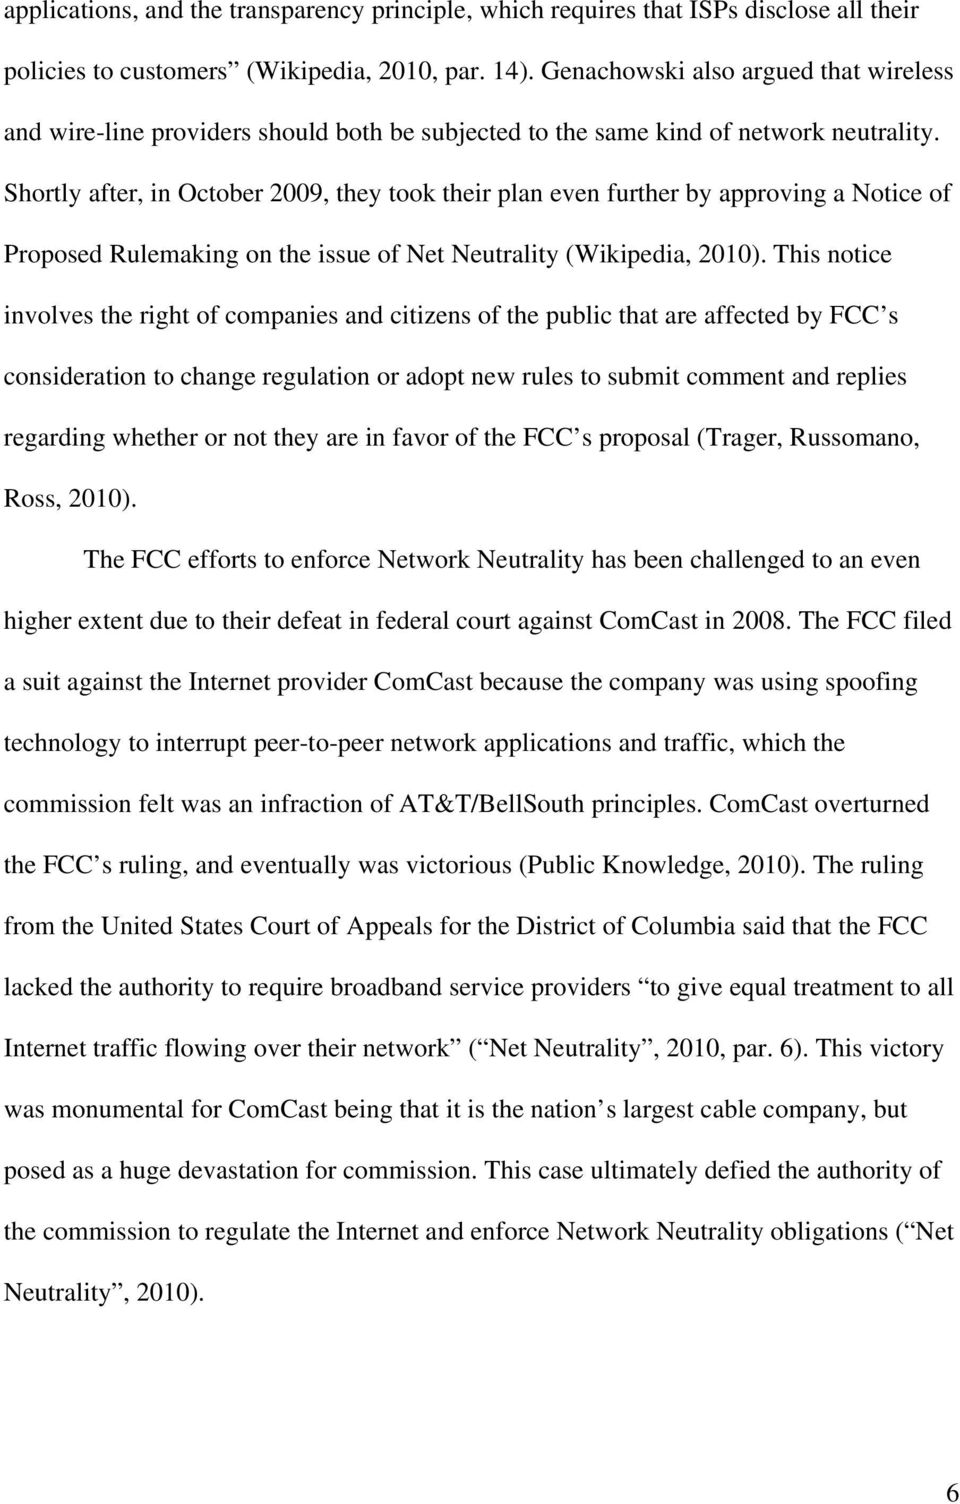 Shortly after, in October 2009, they took their plan even further by approving a Notice of Proposed Rulemaking on the issue of Net Neutrality (Wikipedia, 2010).